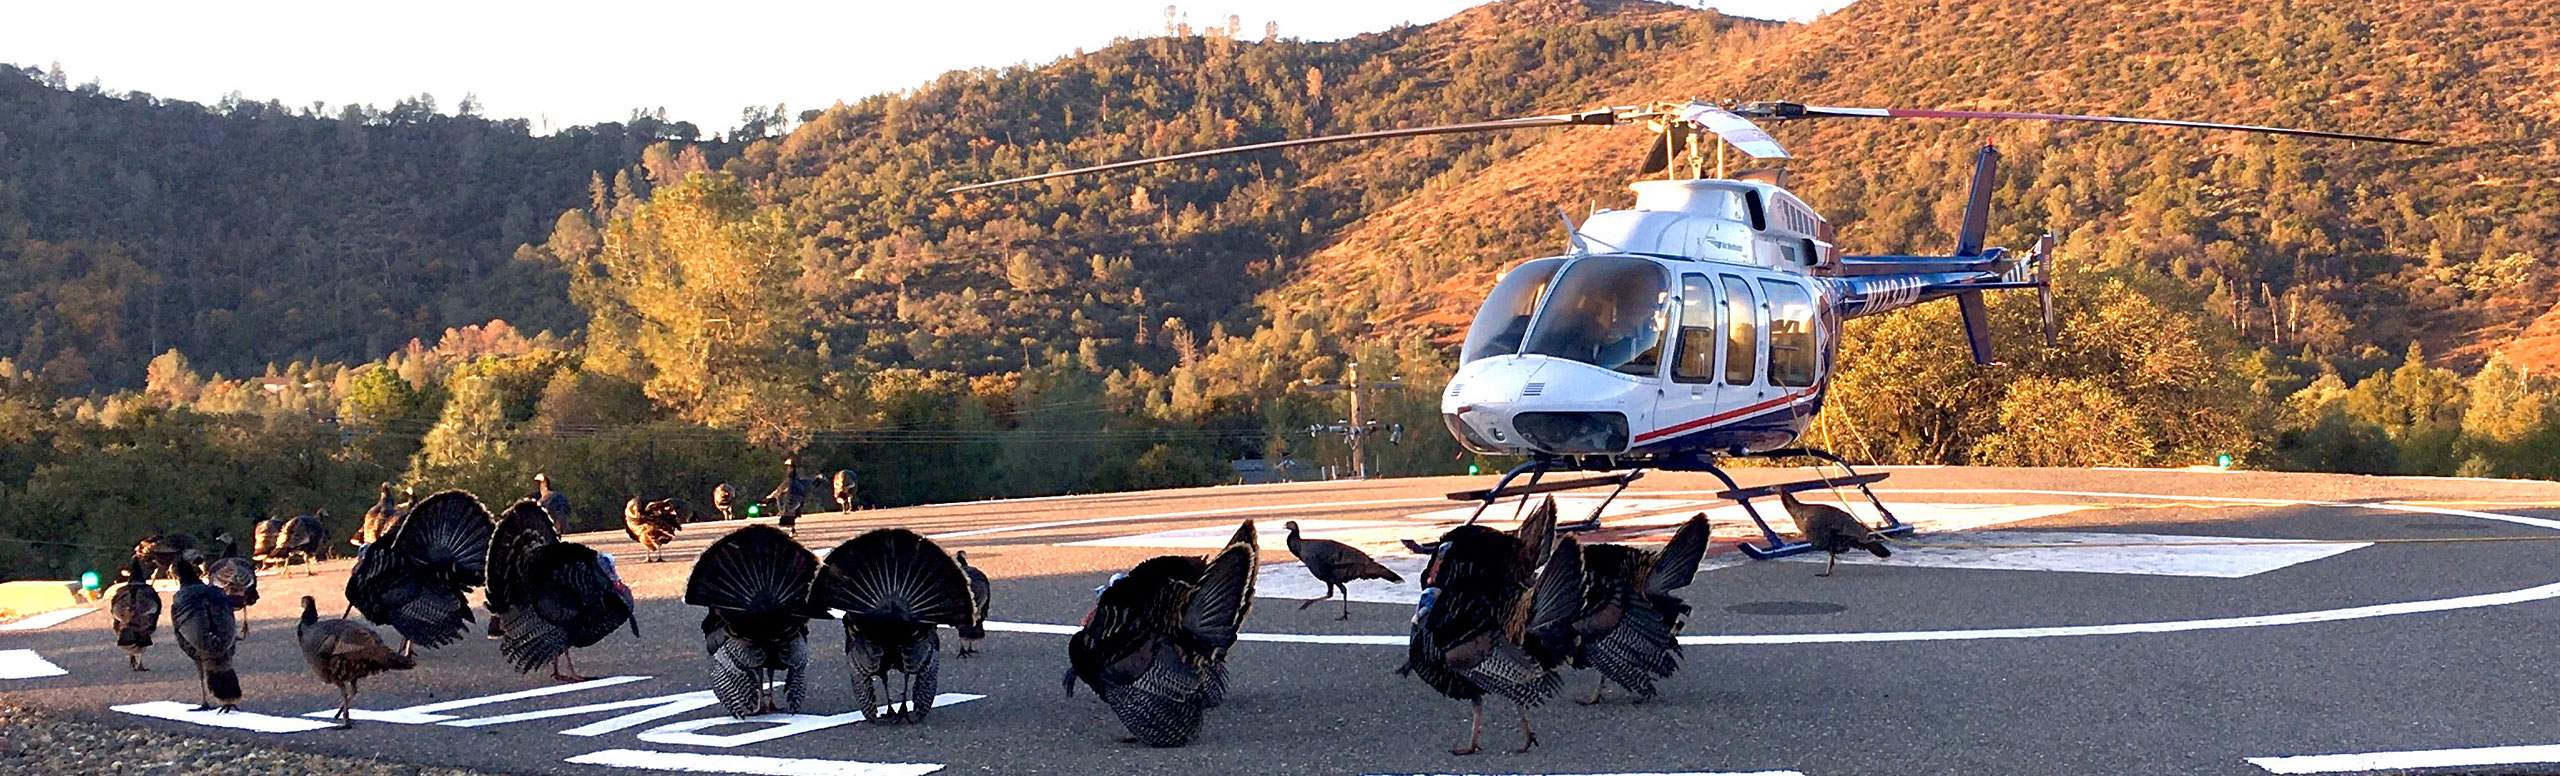 JCFHD Helicopter surrounded by Turkeys